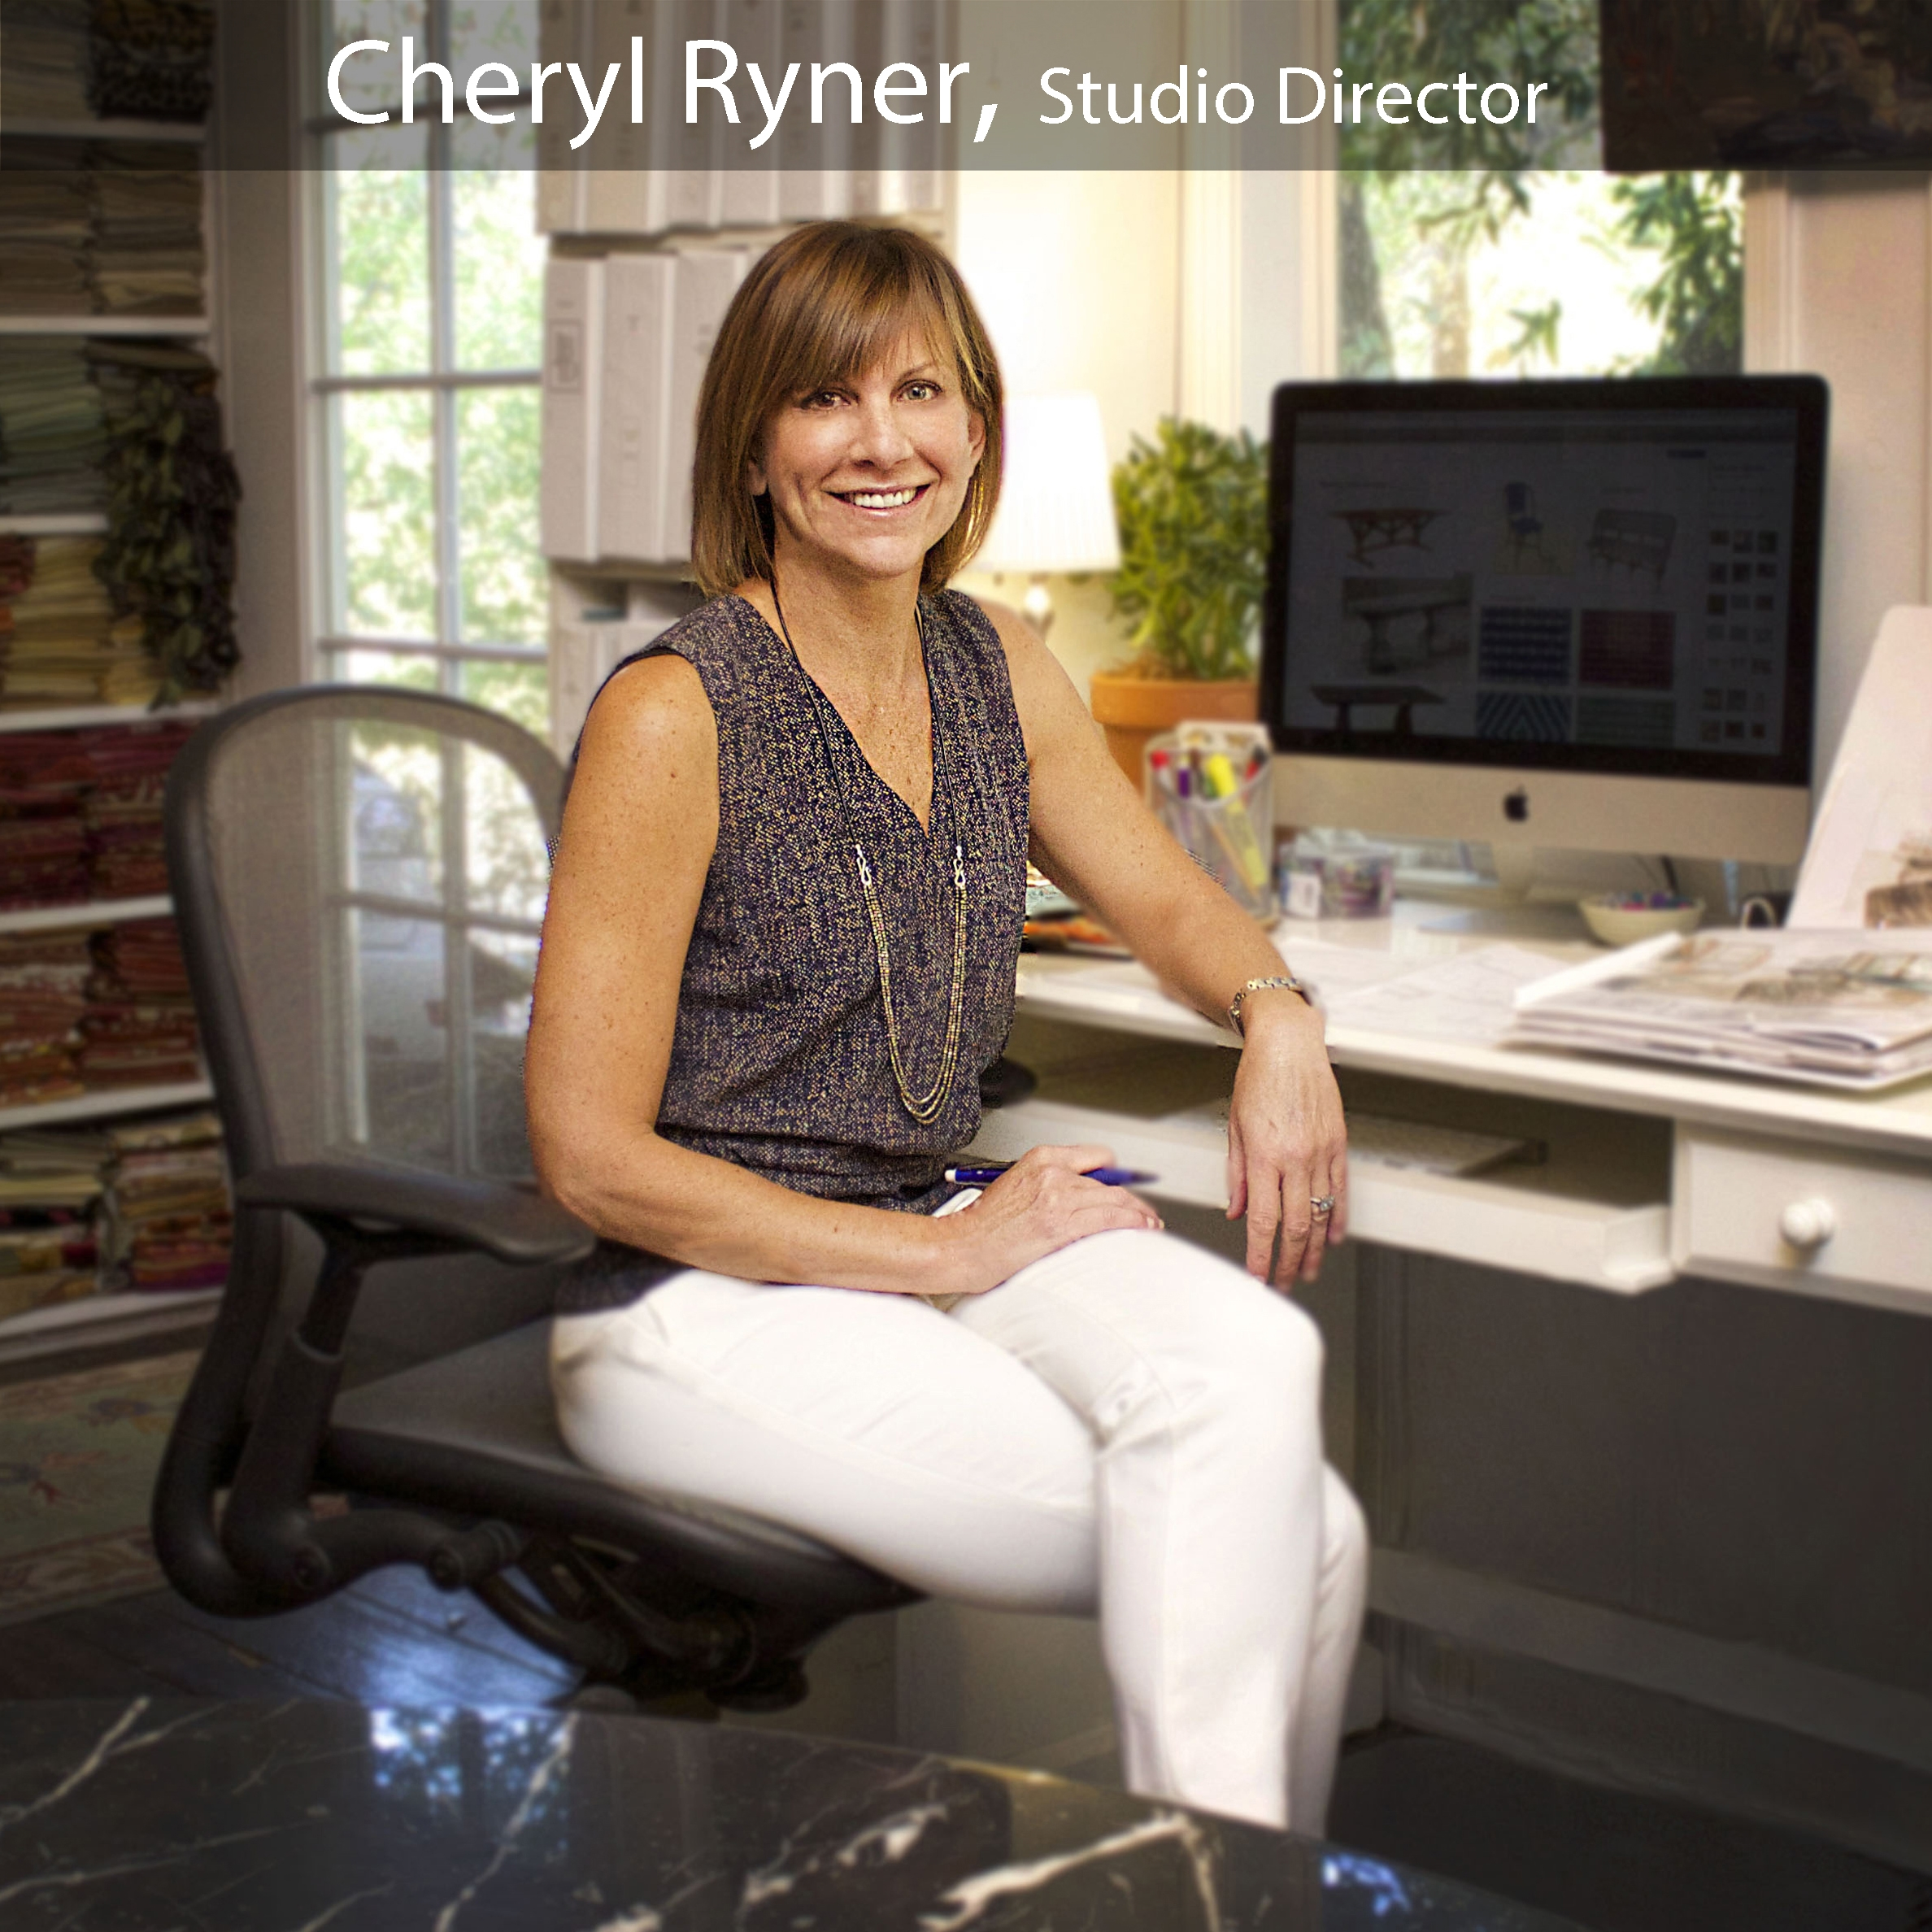 Cheryl joined JBID in 2005. With her incredible organizational skills, ability to prioritize and positive attitude Cheryl oversees the day-to-day operations of the Orinda Studio. From monitoring client project activities, communications and deadlines, to producing budgets, proposals and invoicing Cheryl handles it all with grace and a smile.